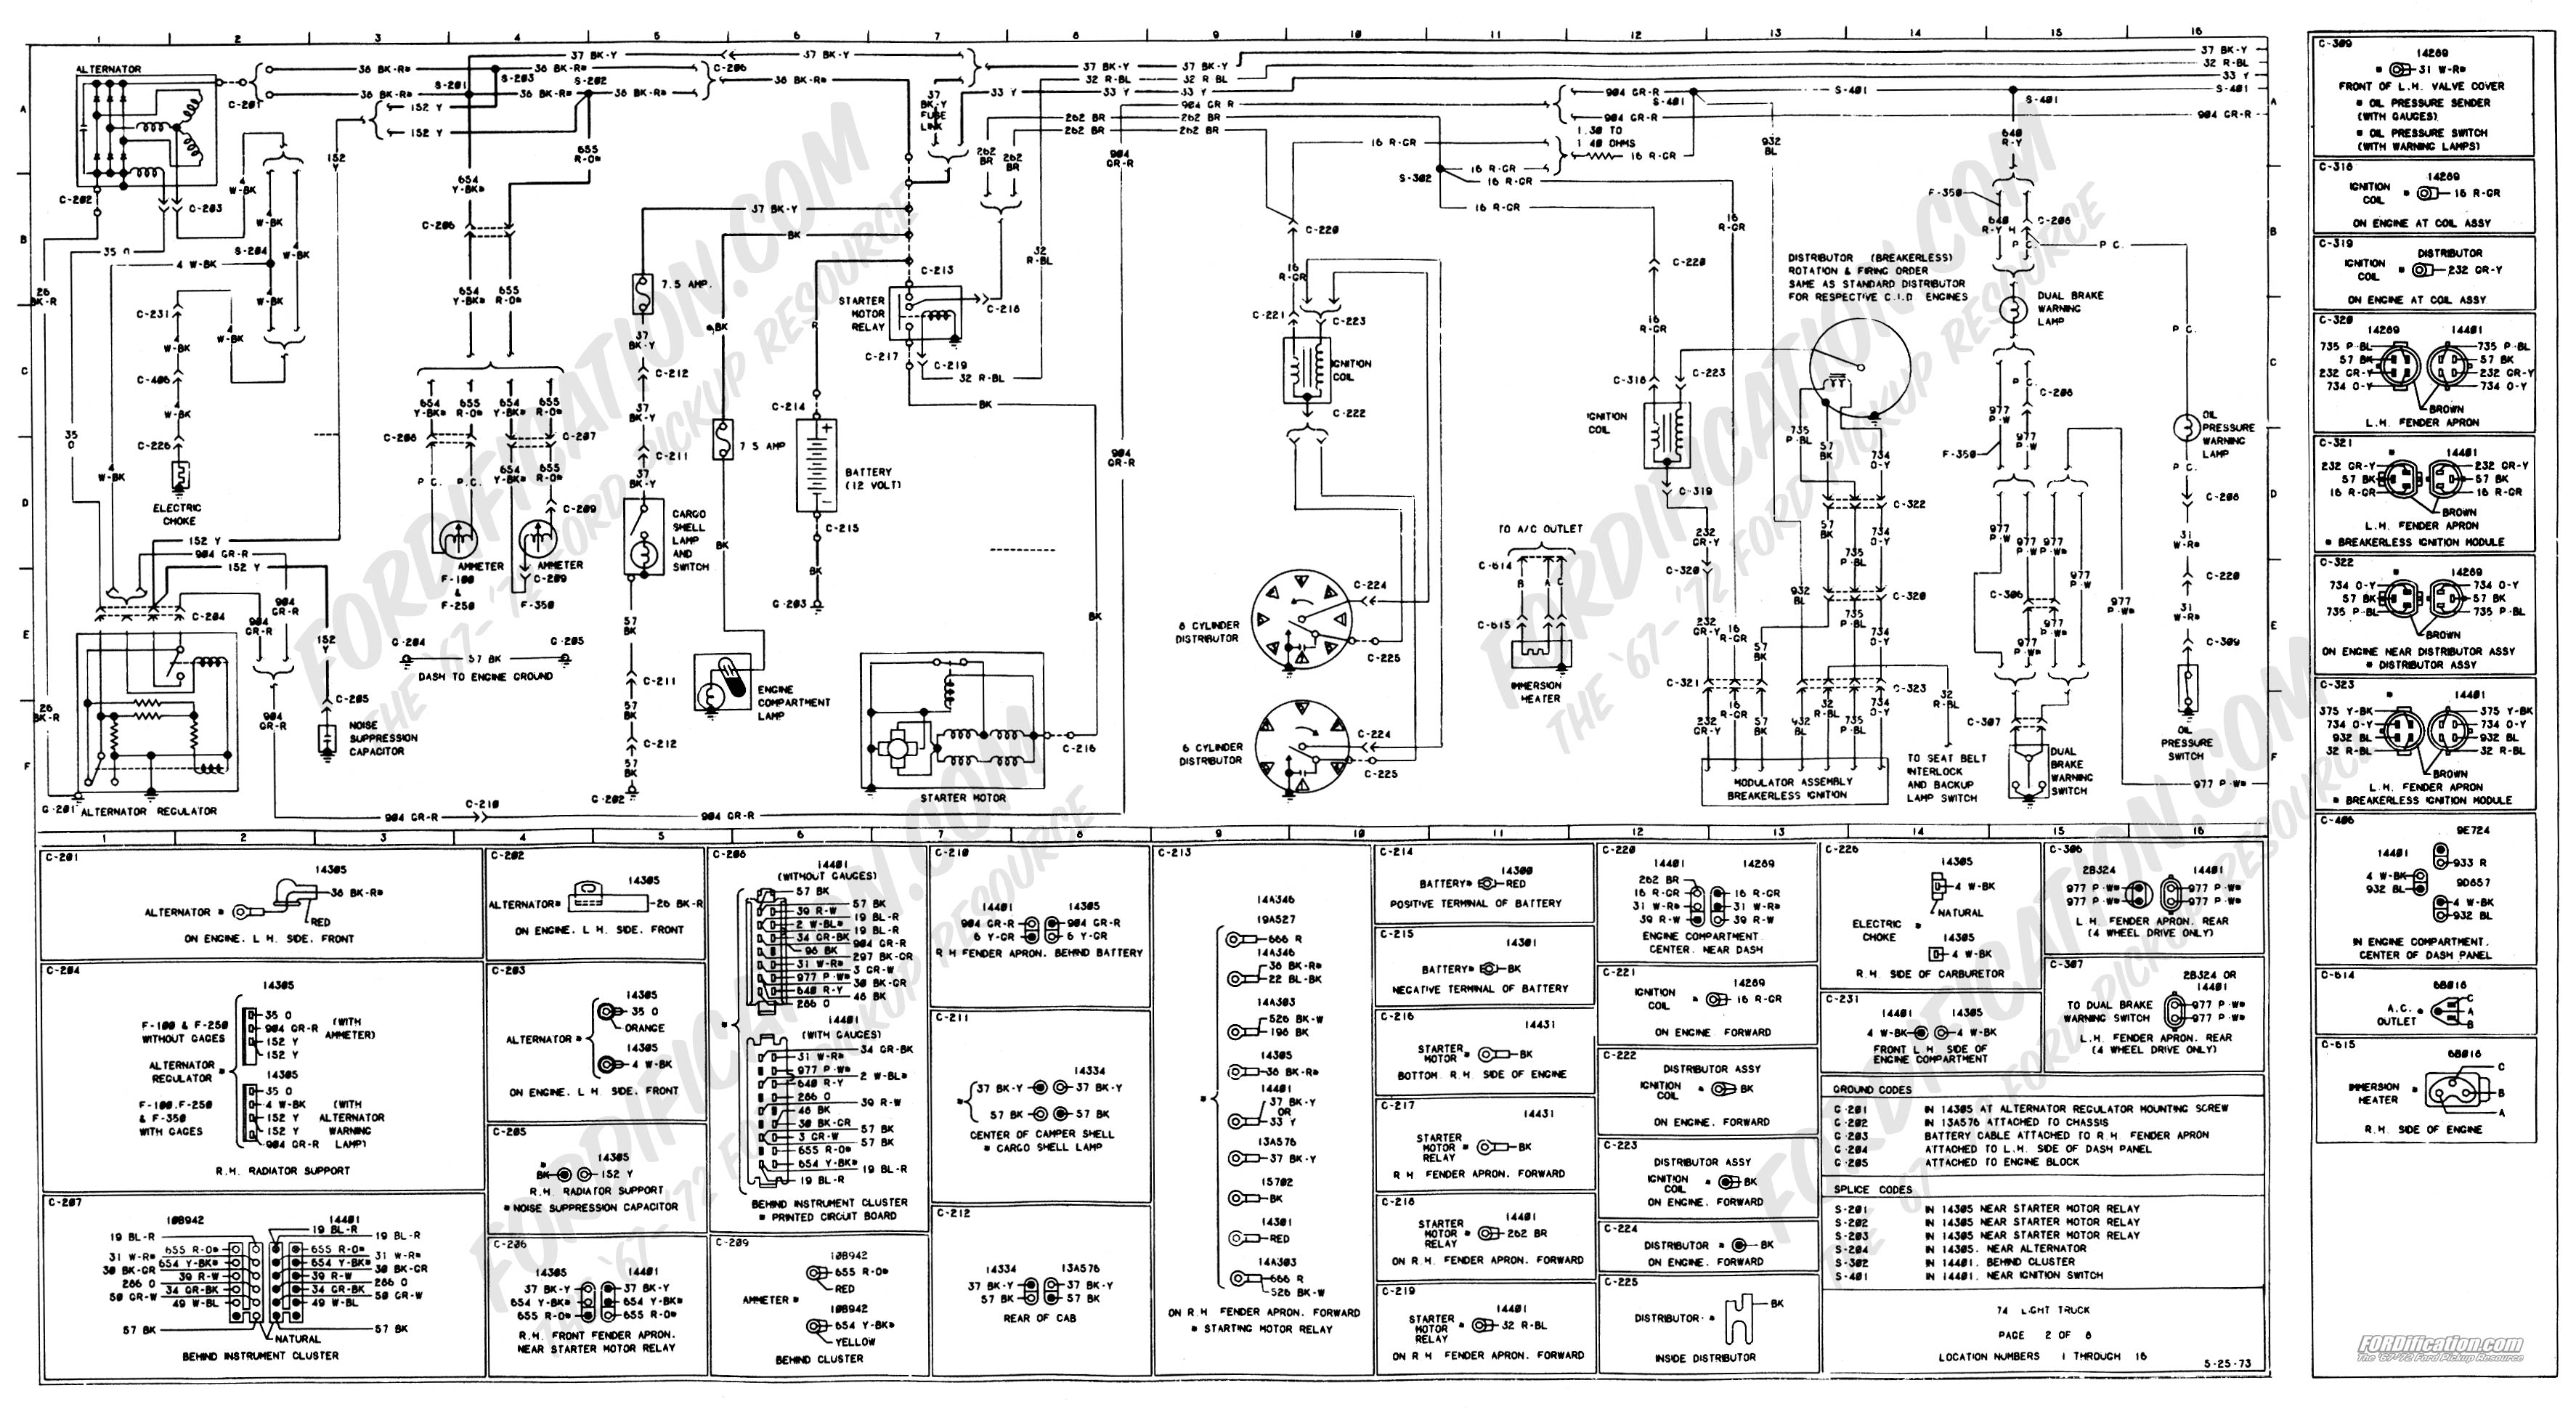 1963 Ford F350 Wiring Diagram F500 1973 F100 Database1973 1979 Truck Diagrams U0026 Schematics